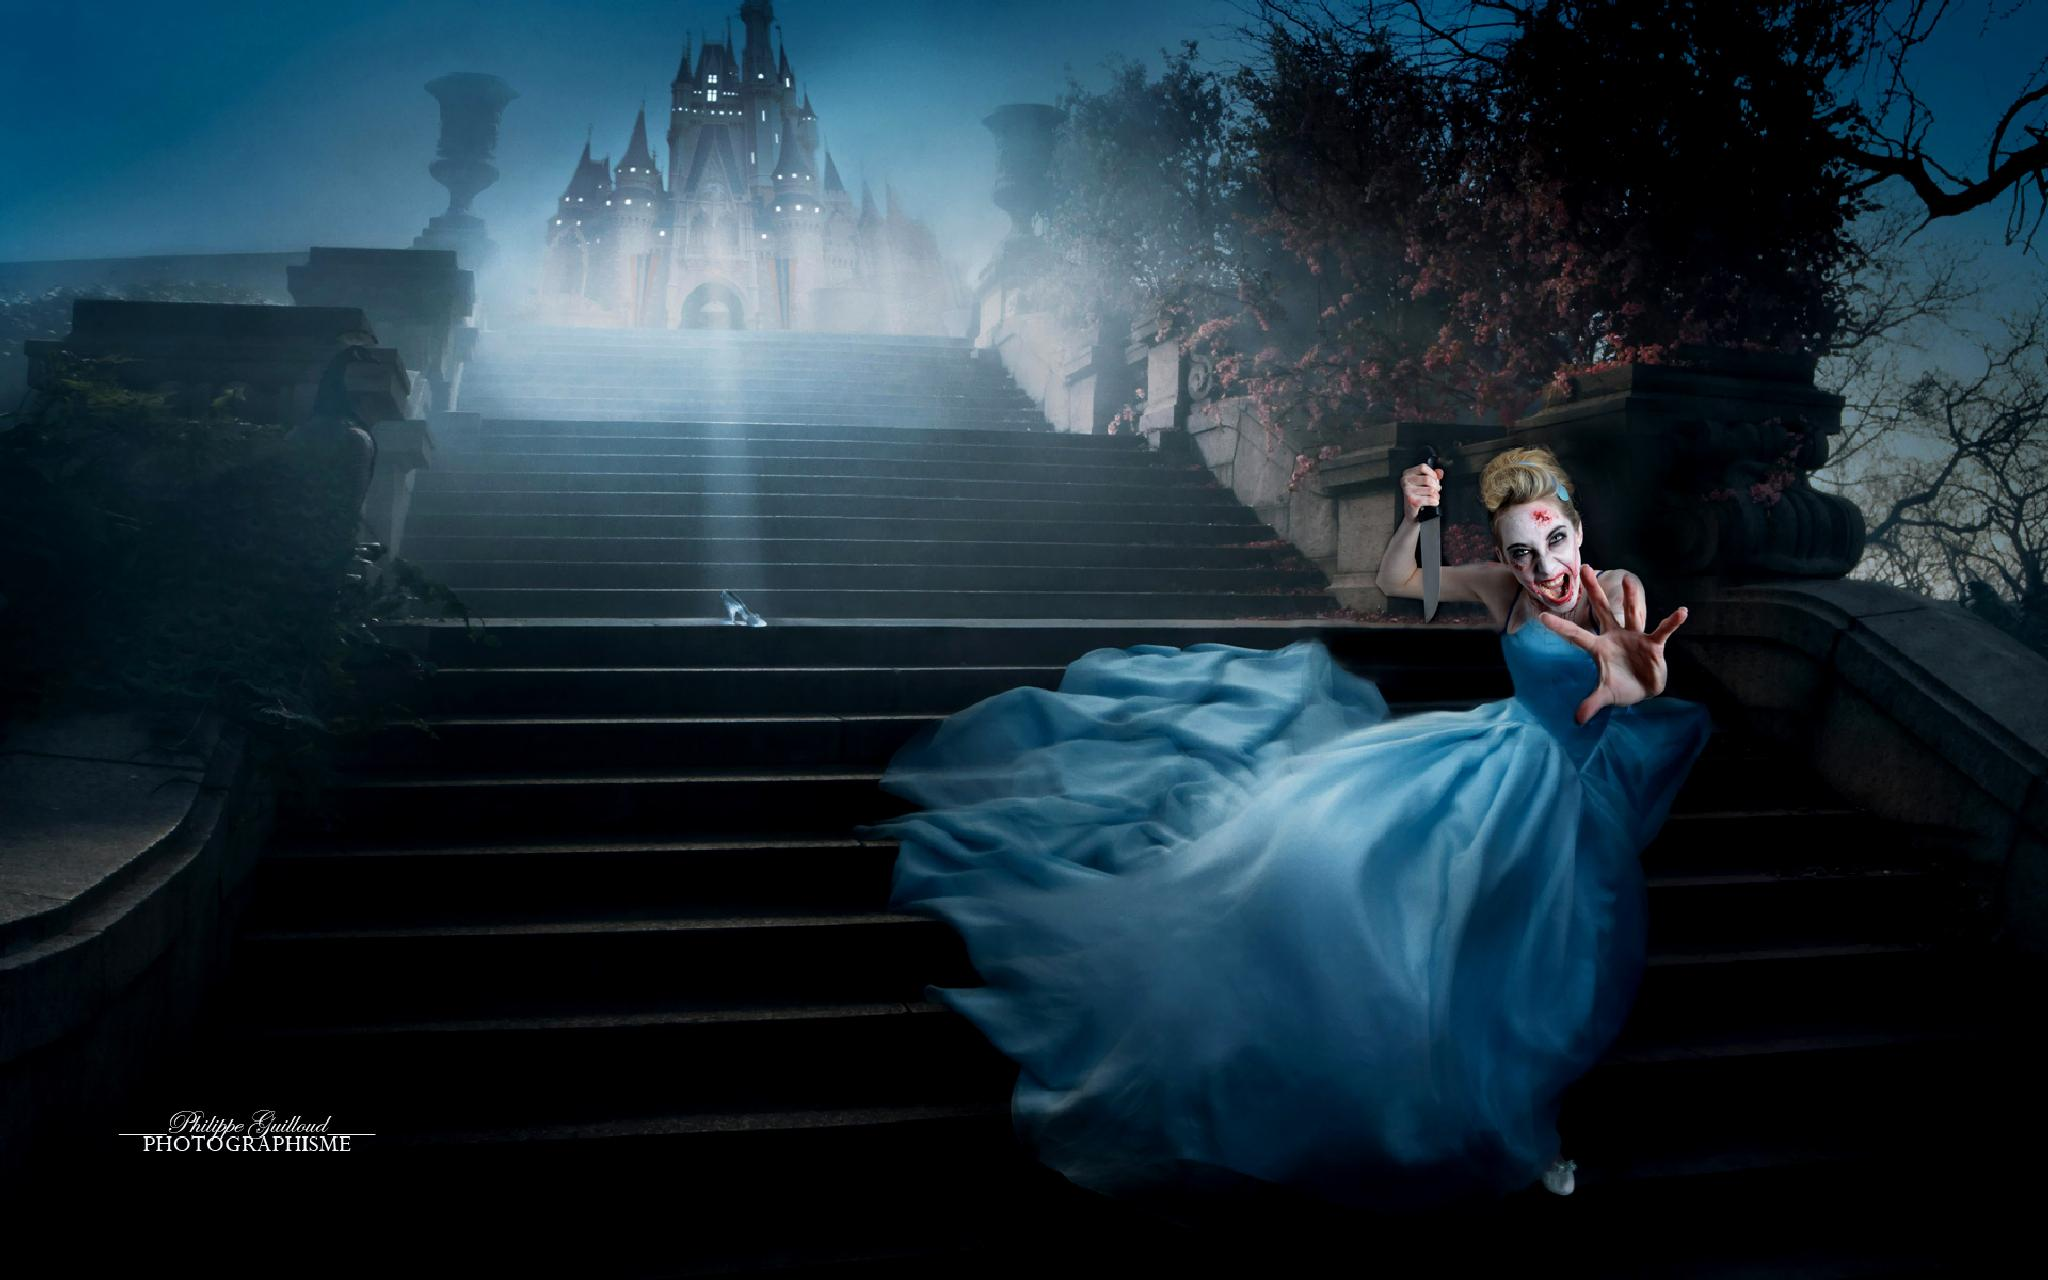 Cendrillon by Philippe Guilloud